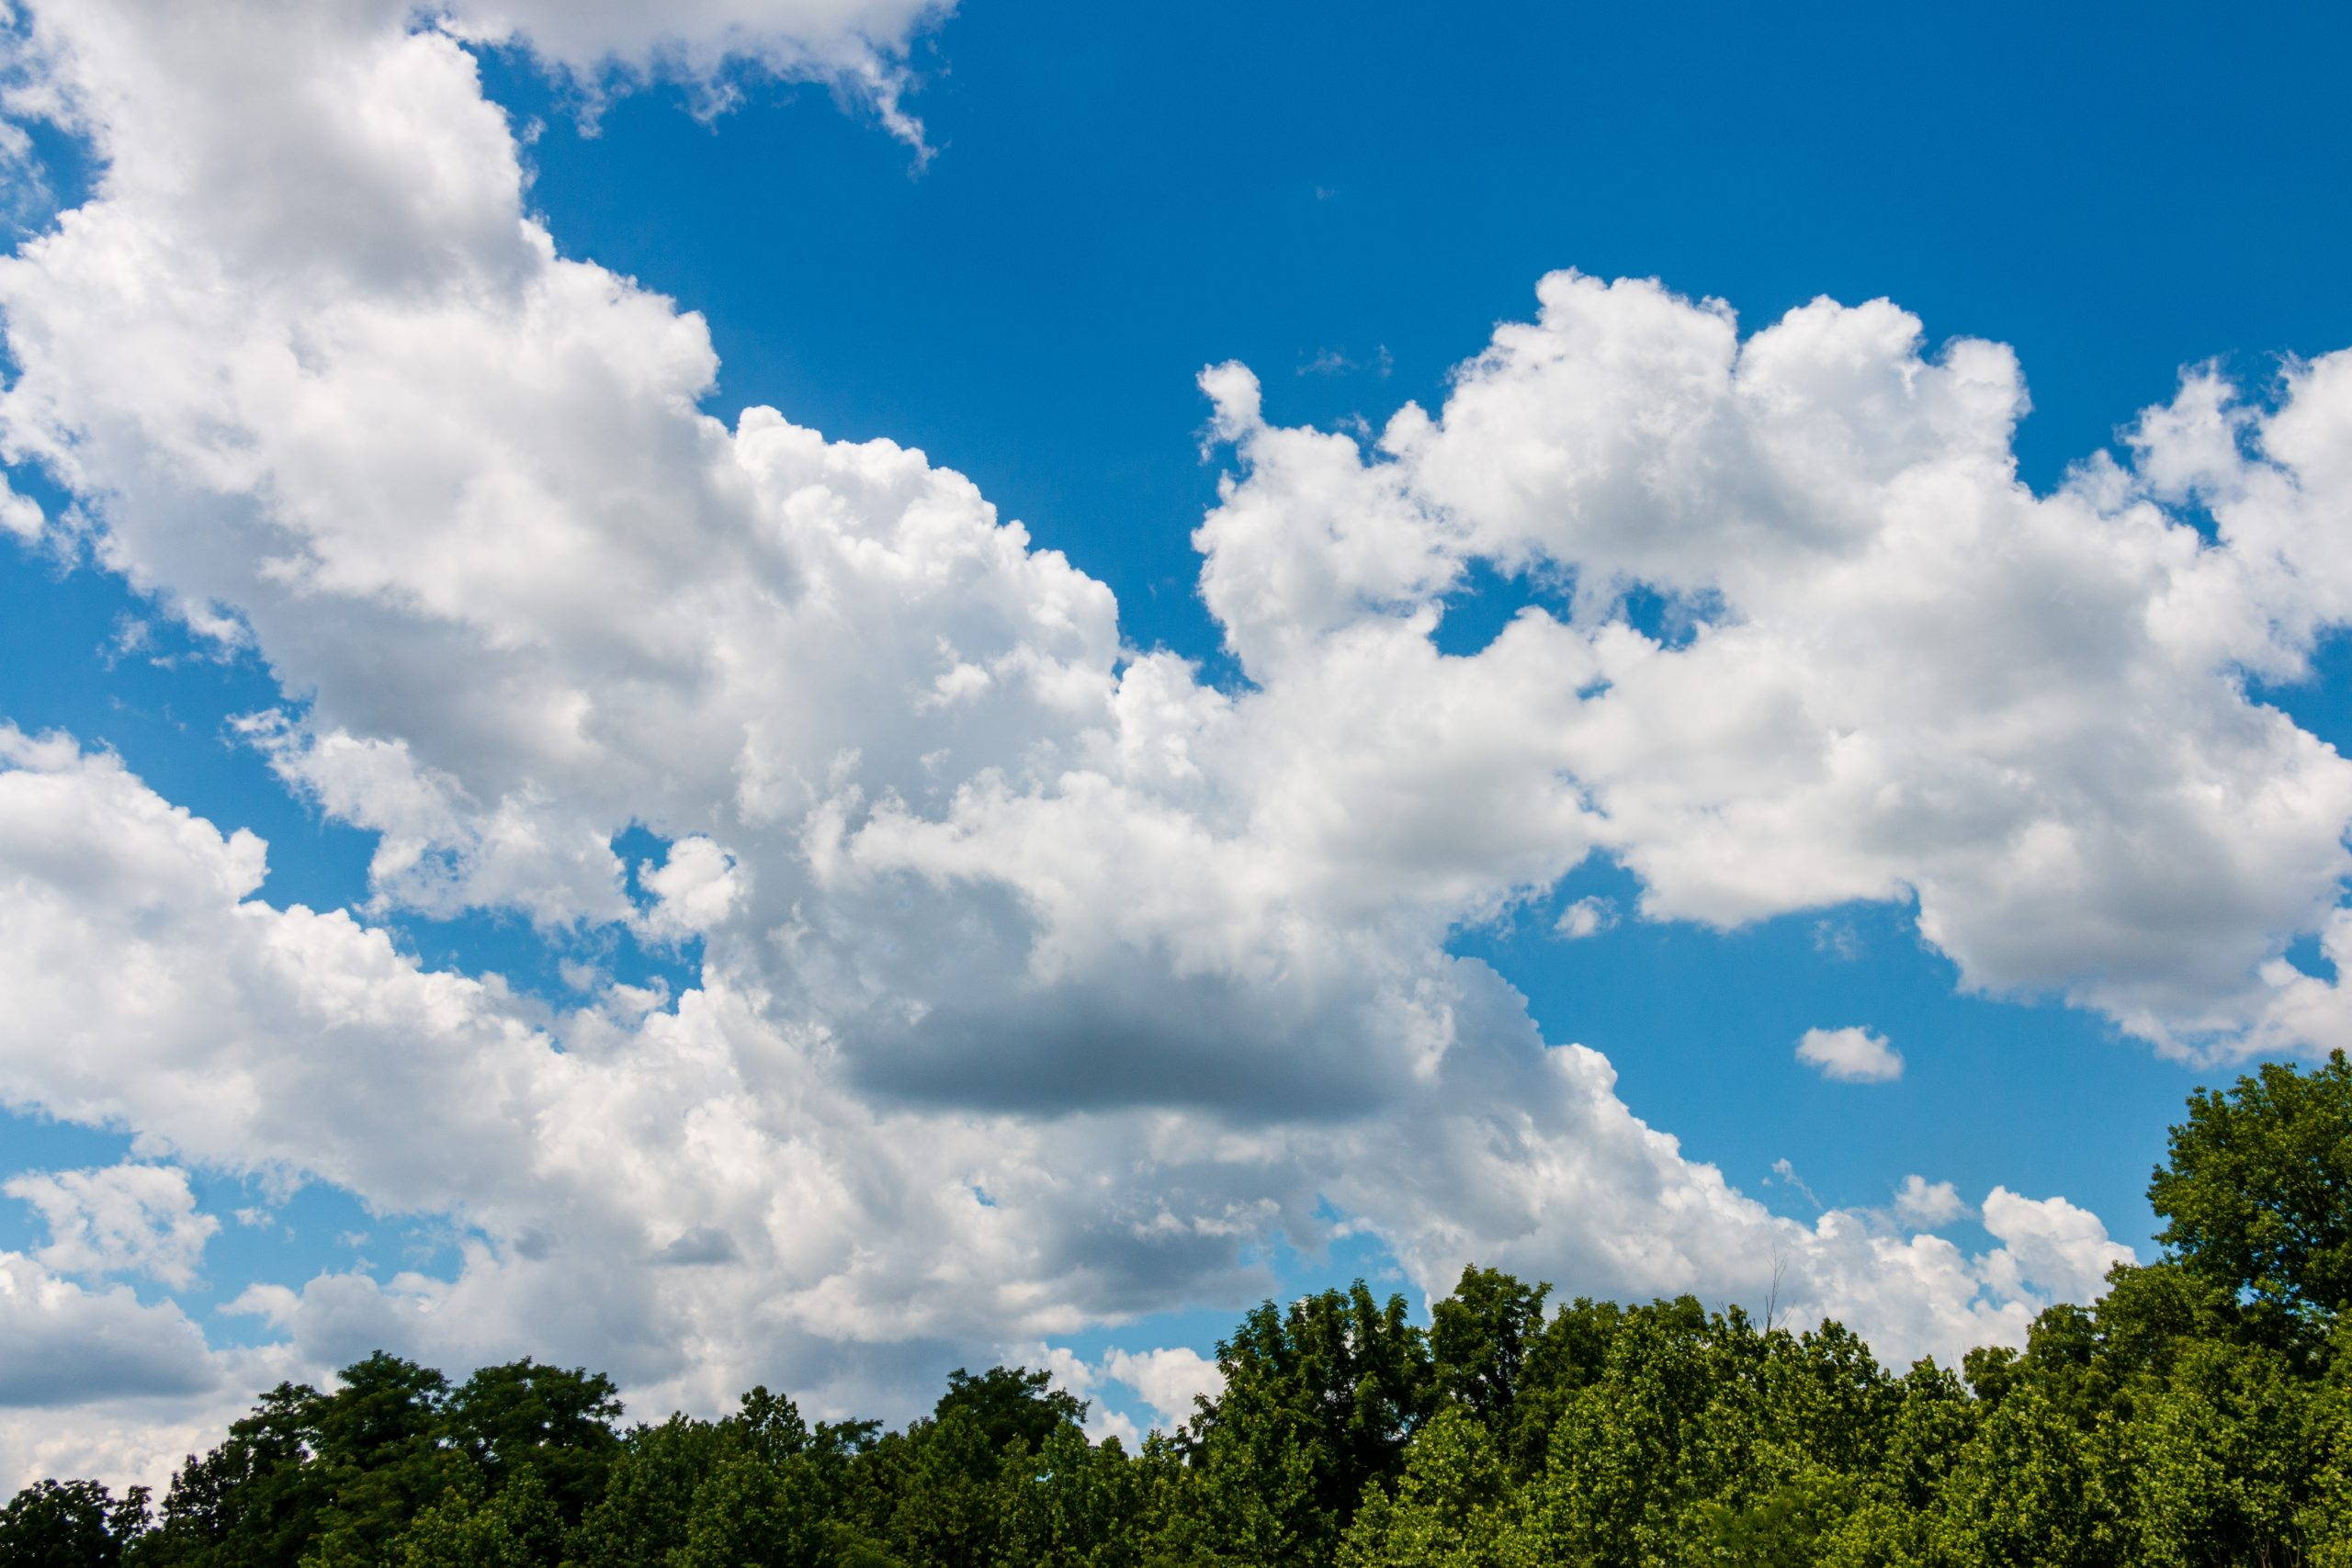 Clouds against a bright blue sky on a sunny summer day at Adventure Outpost in Winton Woods.